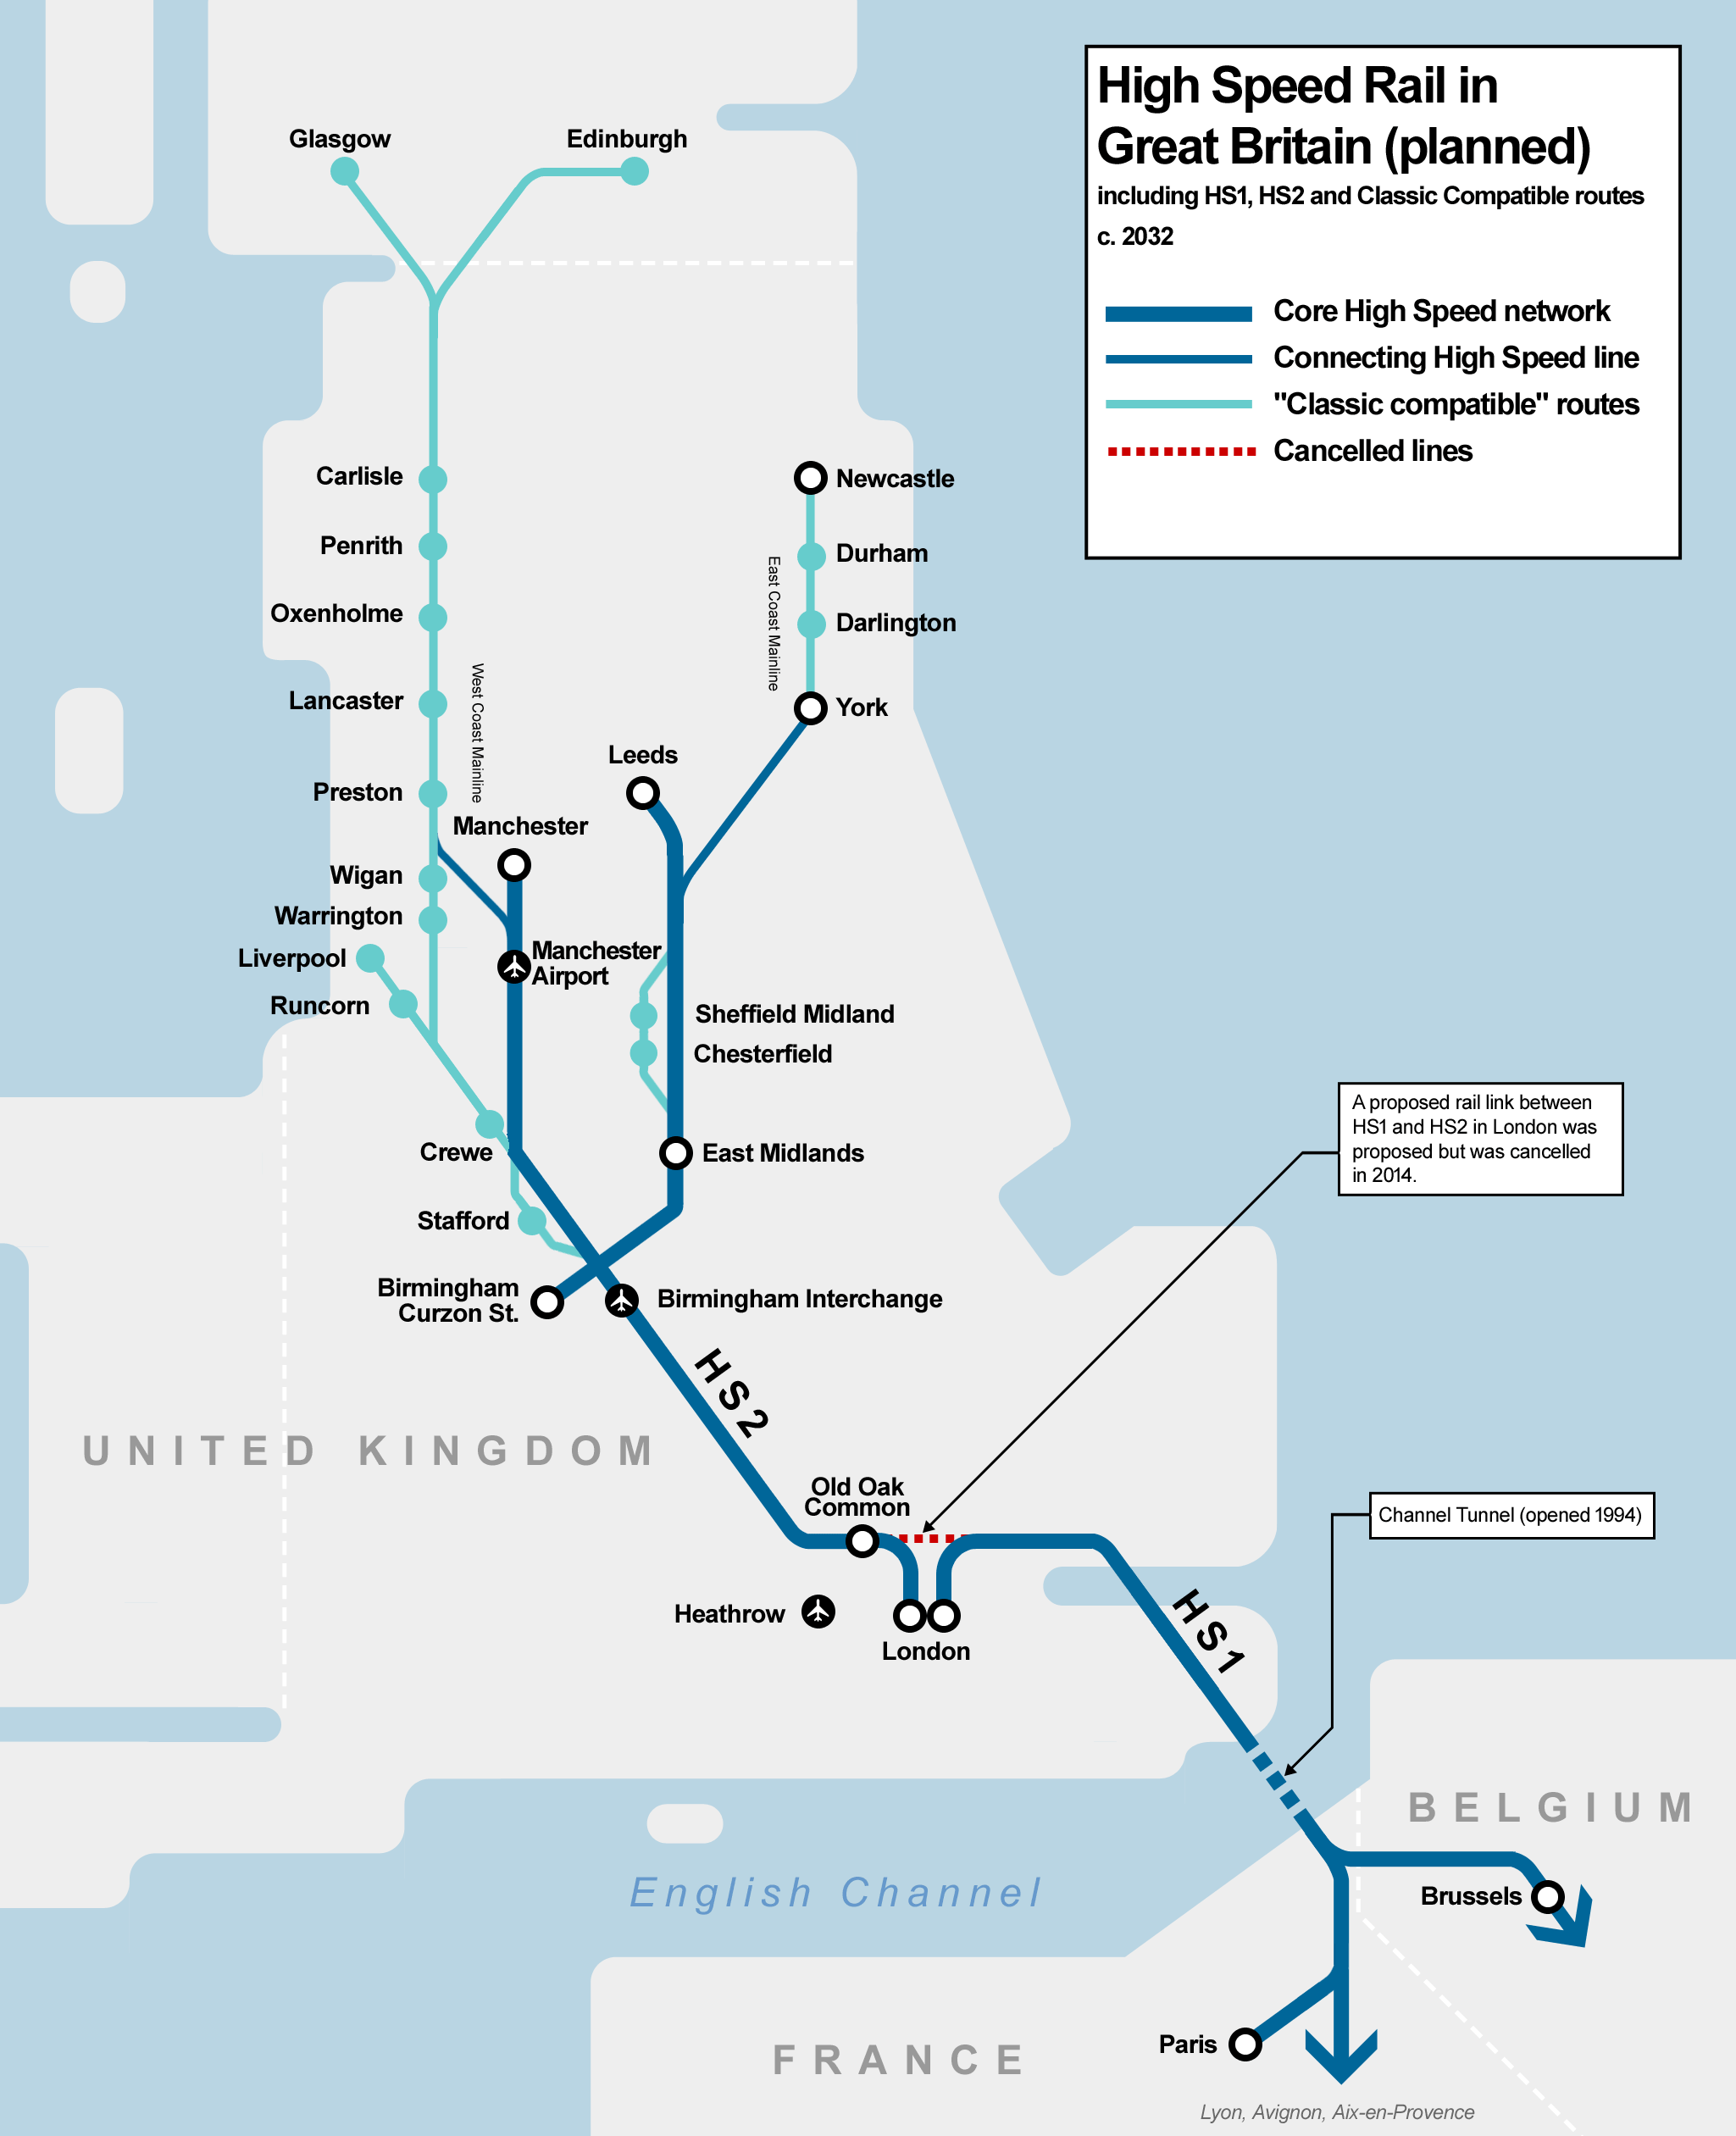 diagrammatic map showing the planned high speed rail network in great britain with proposed classic compatible rail routes extending to other parts of